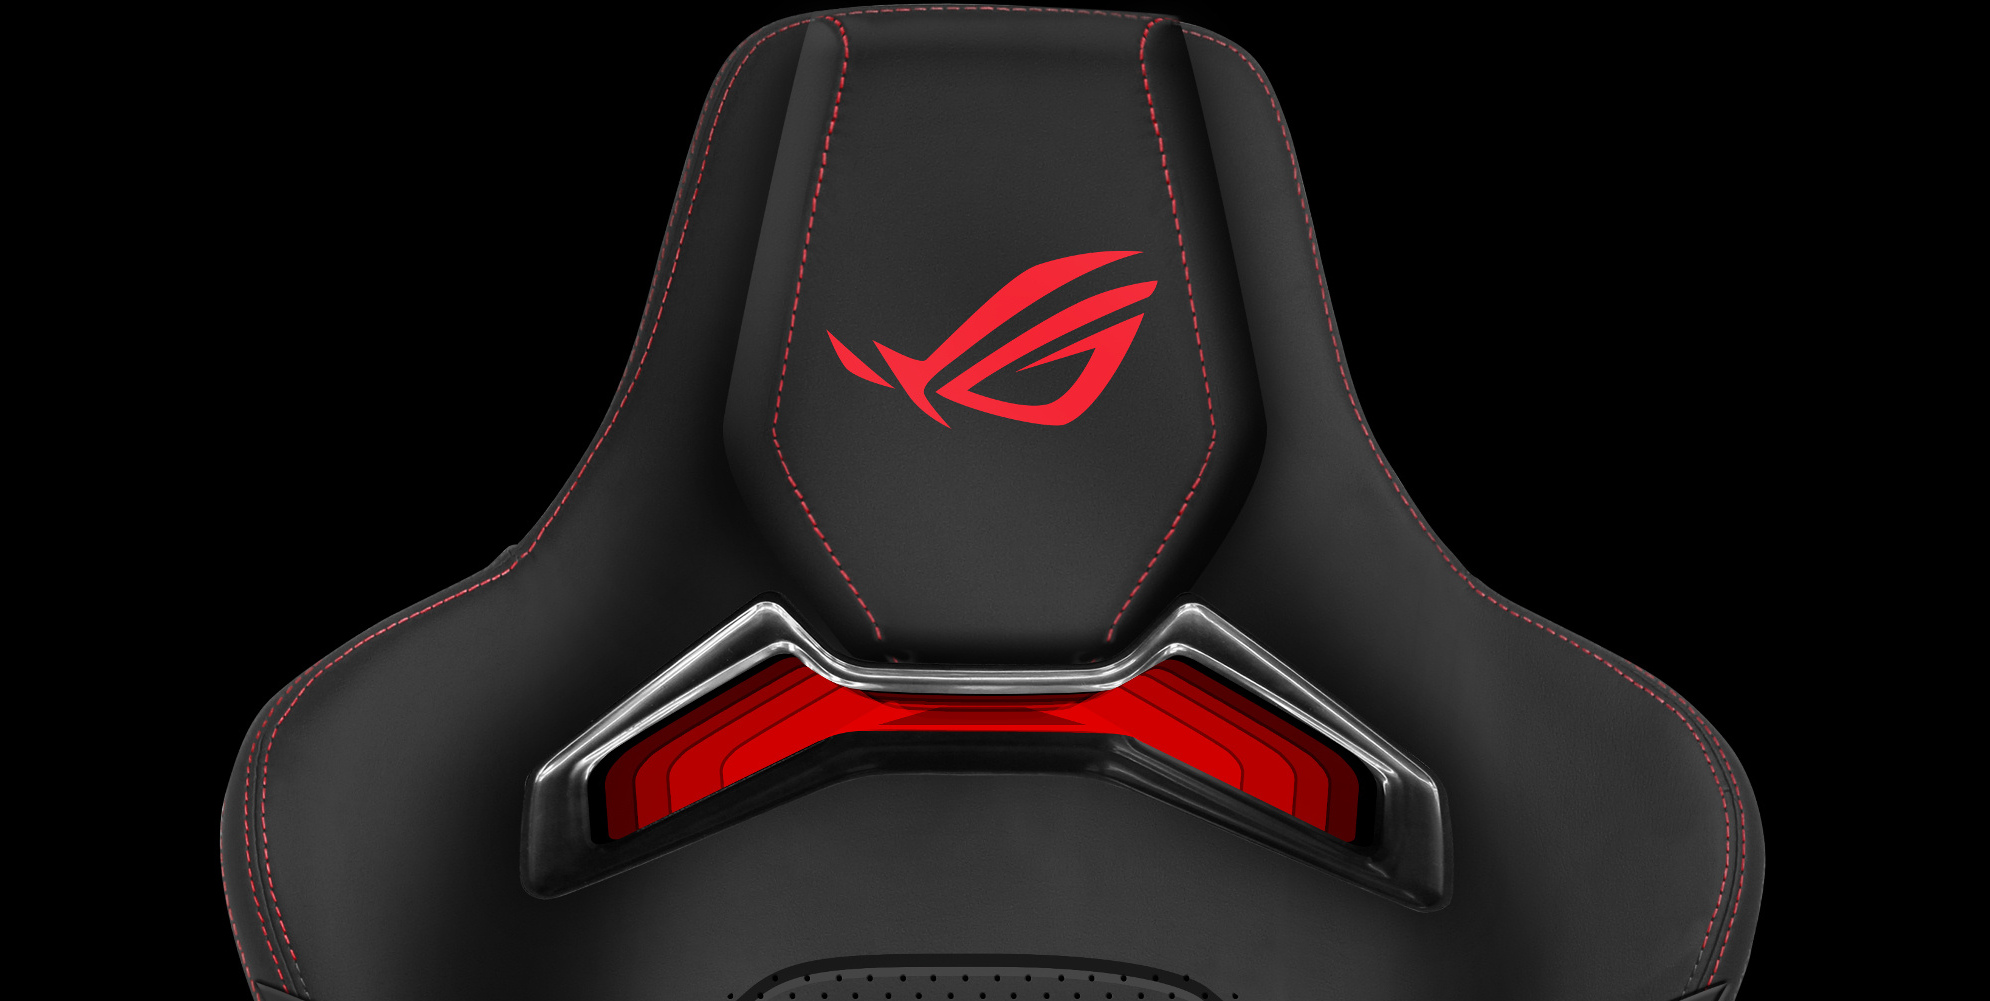 Lighting Rgb The Rog Chariot Gaming Chair Is Decked Out In Rgb Lighting Rog